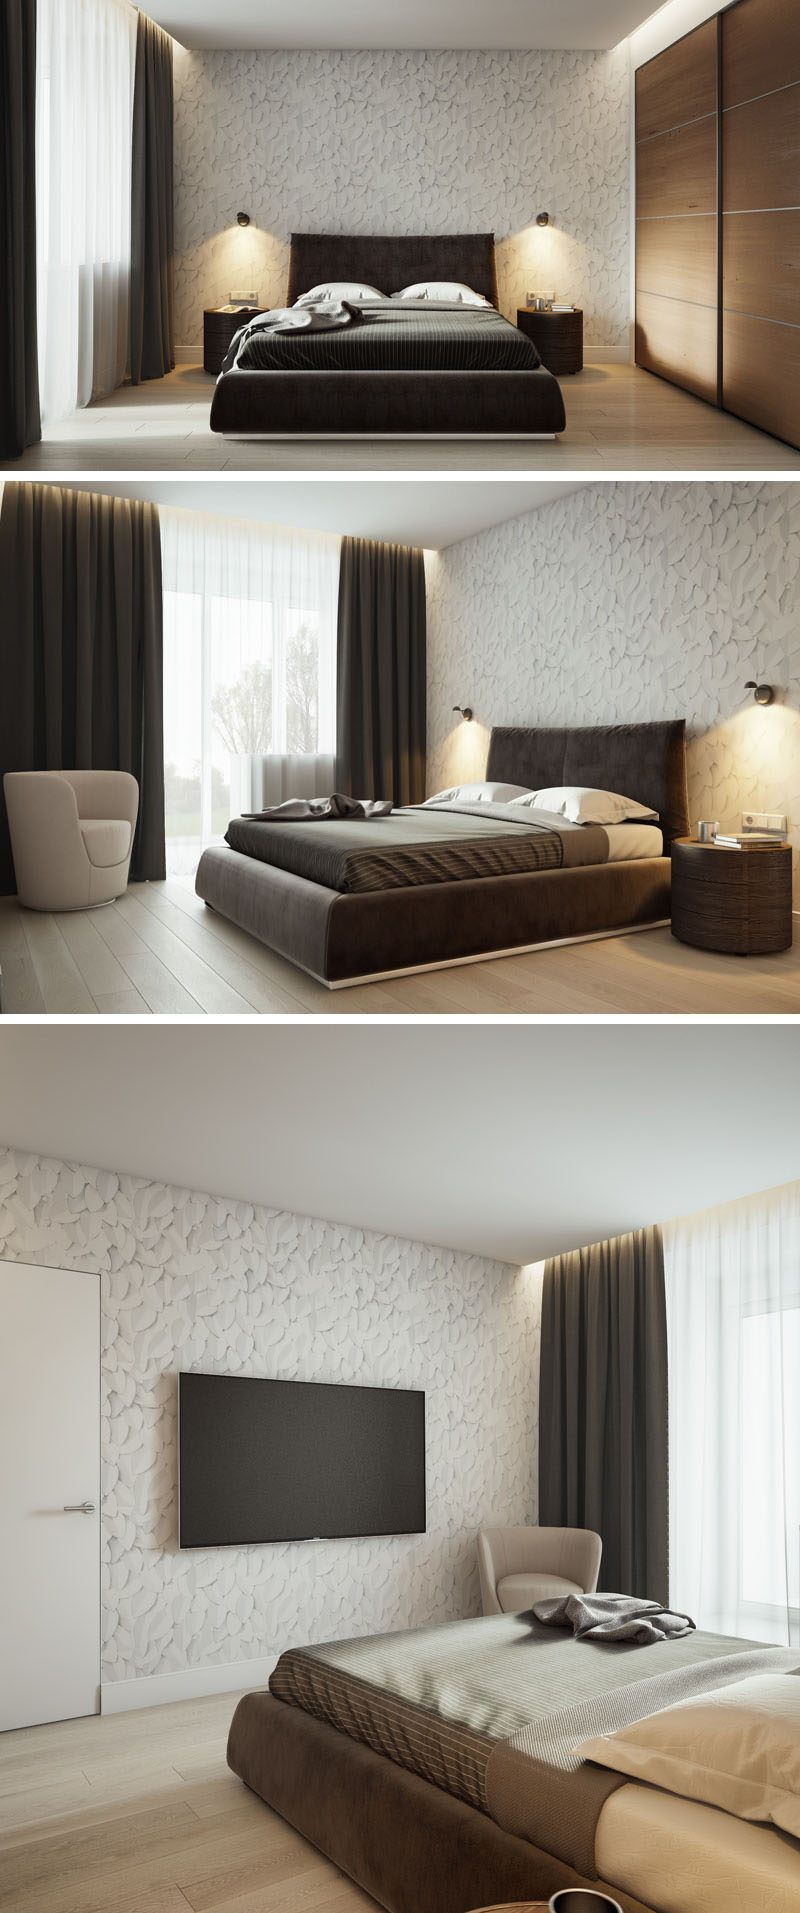 Buro108 Have Designed A Contemporary Interior For An Apartment In ...